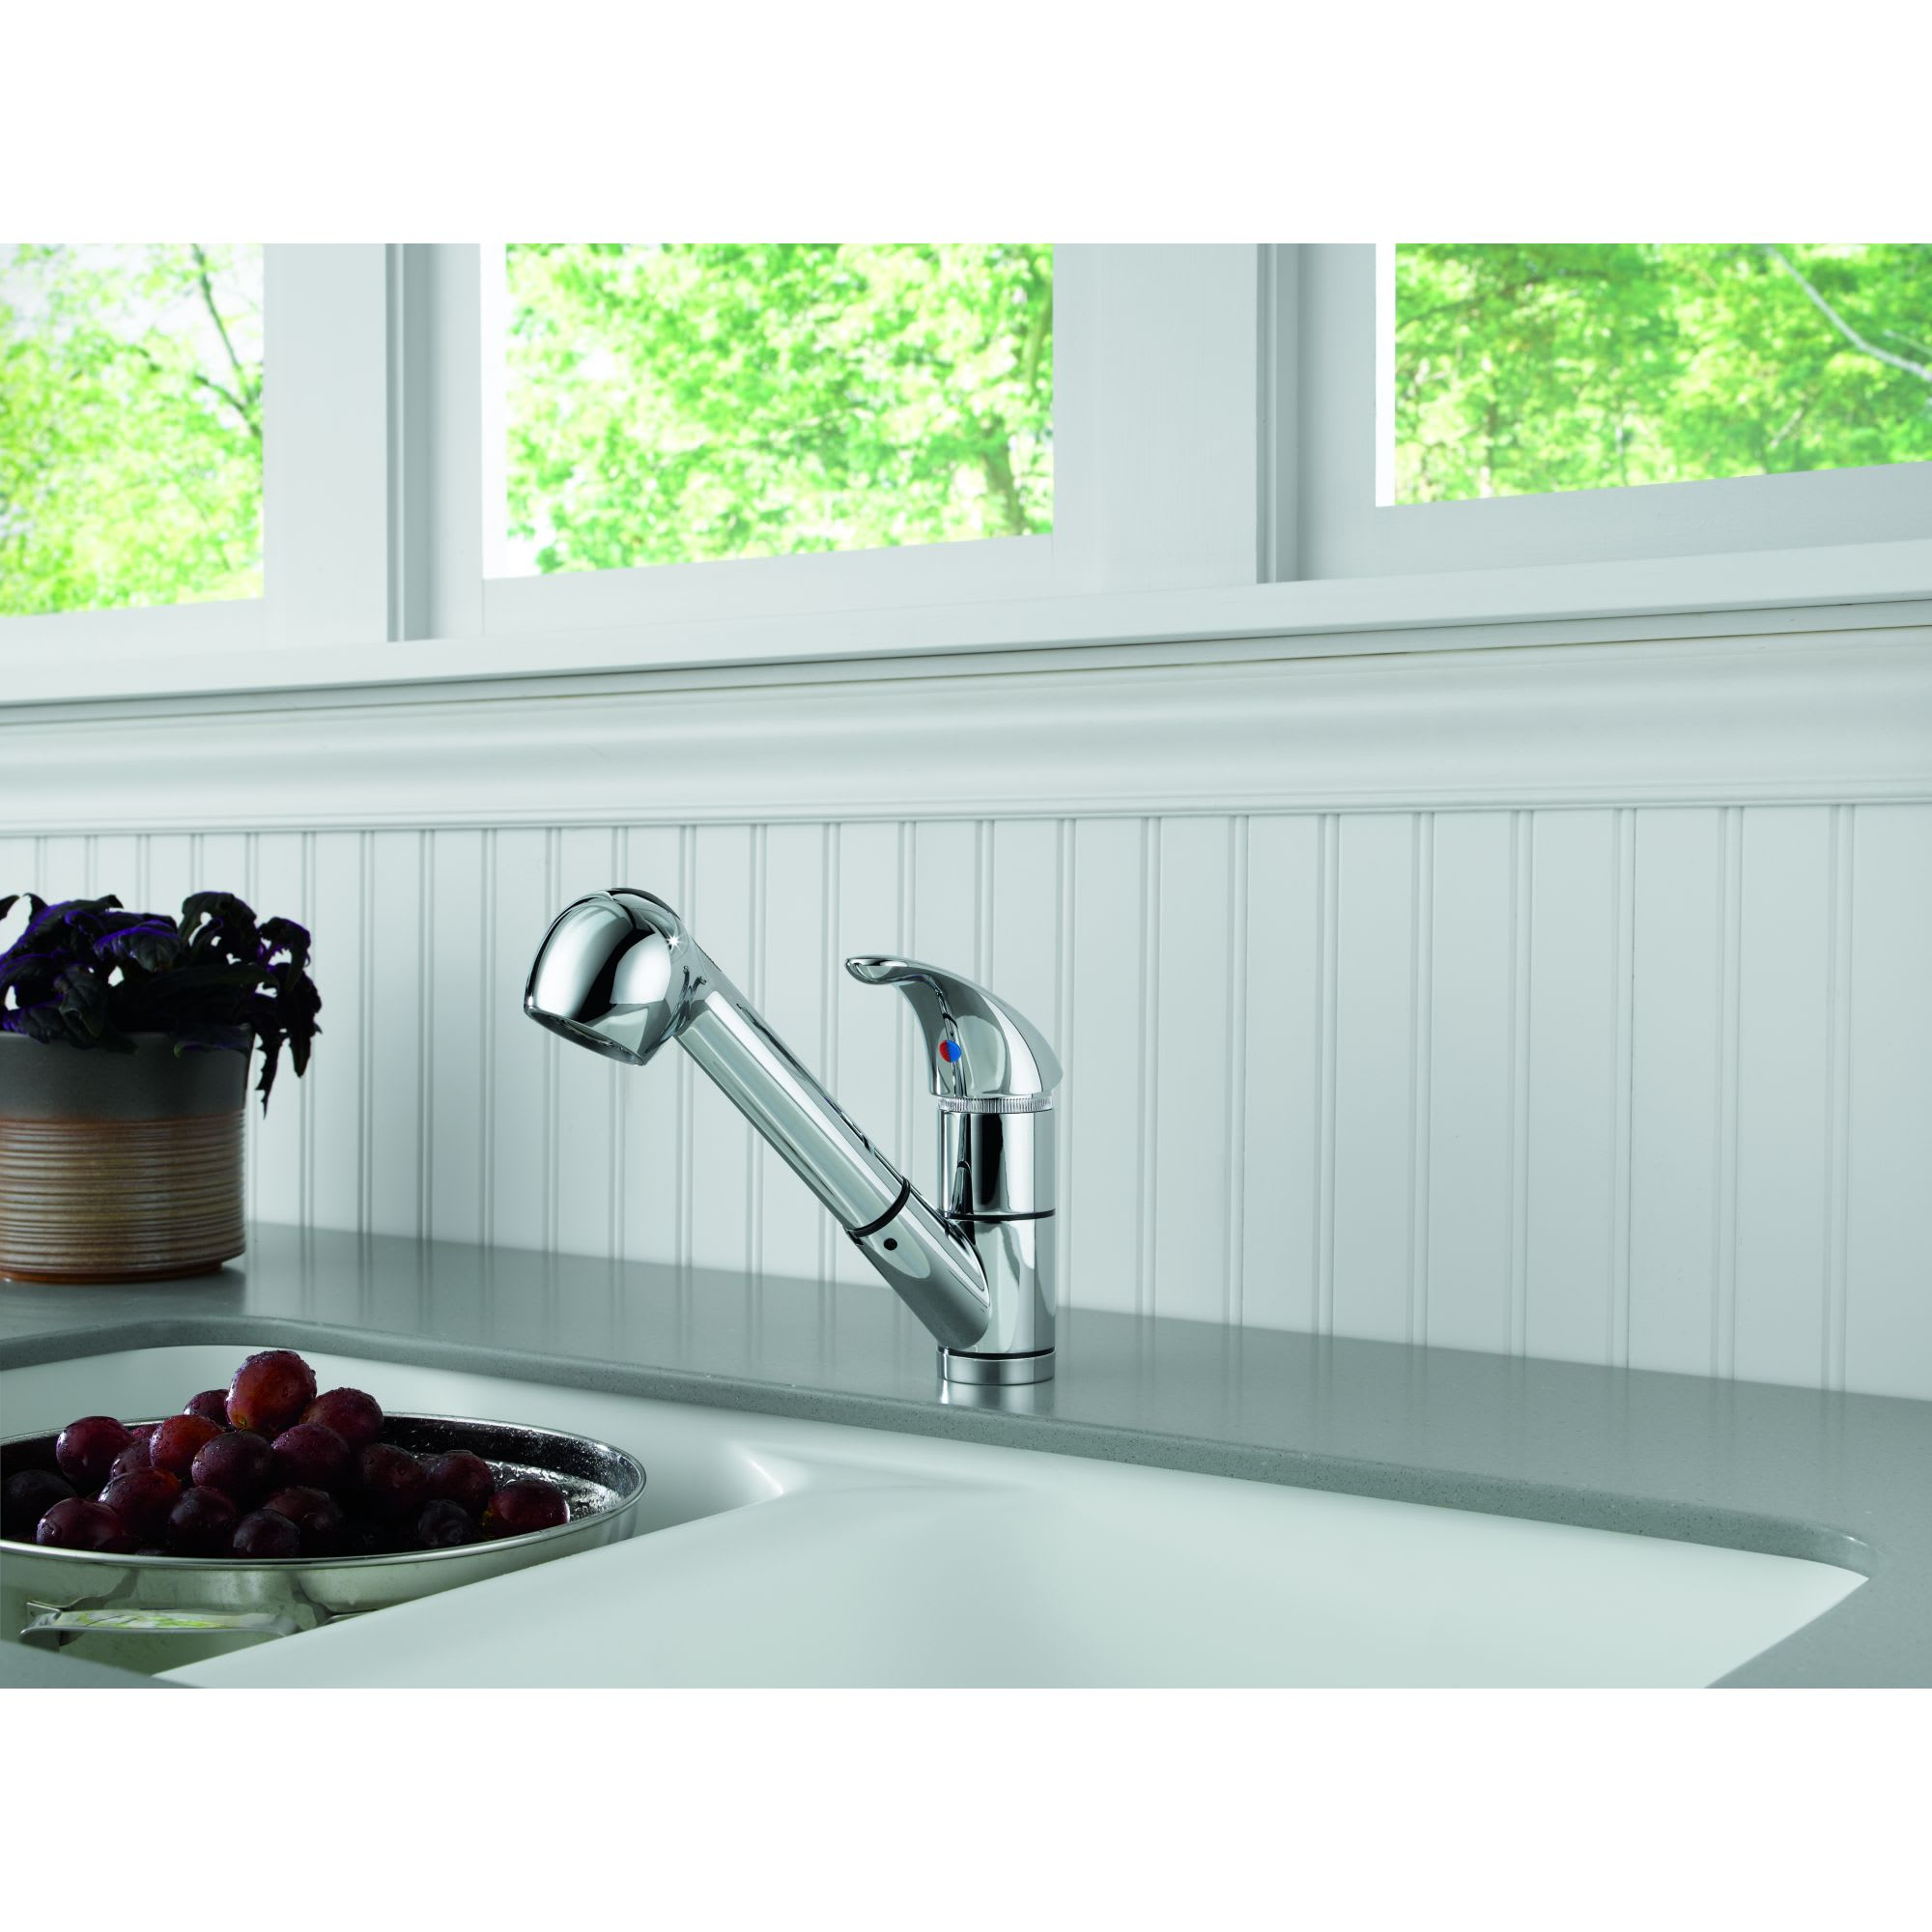 Peerless P18550LF Chrome Pull-out Kitchen Faucet with Two Function ...